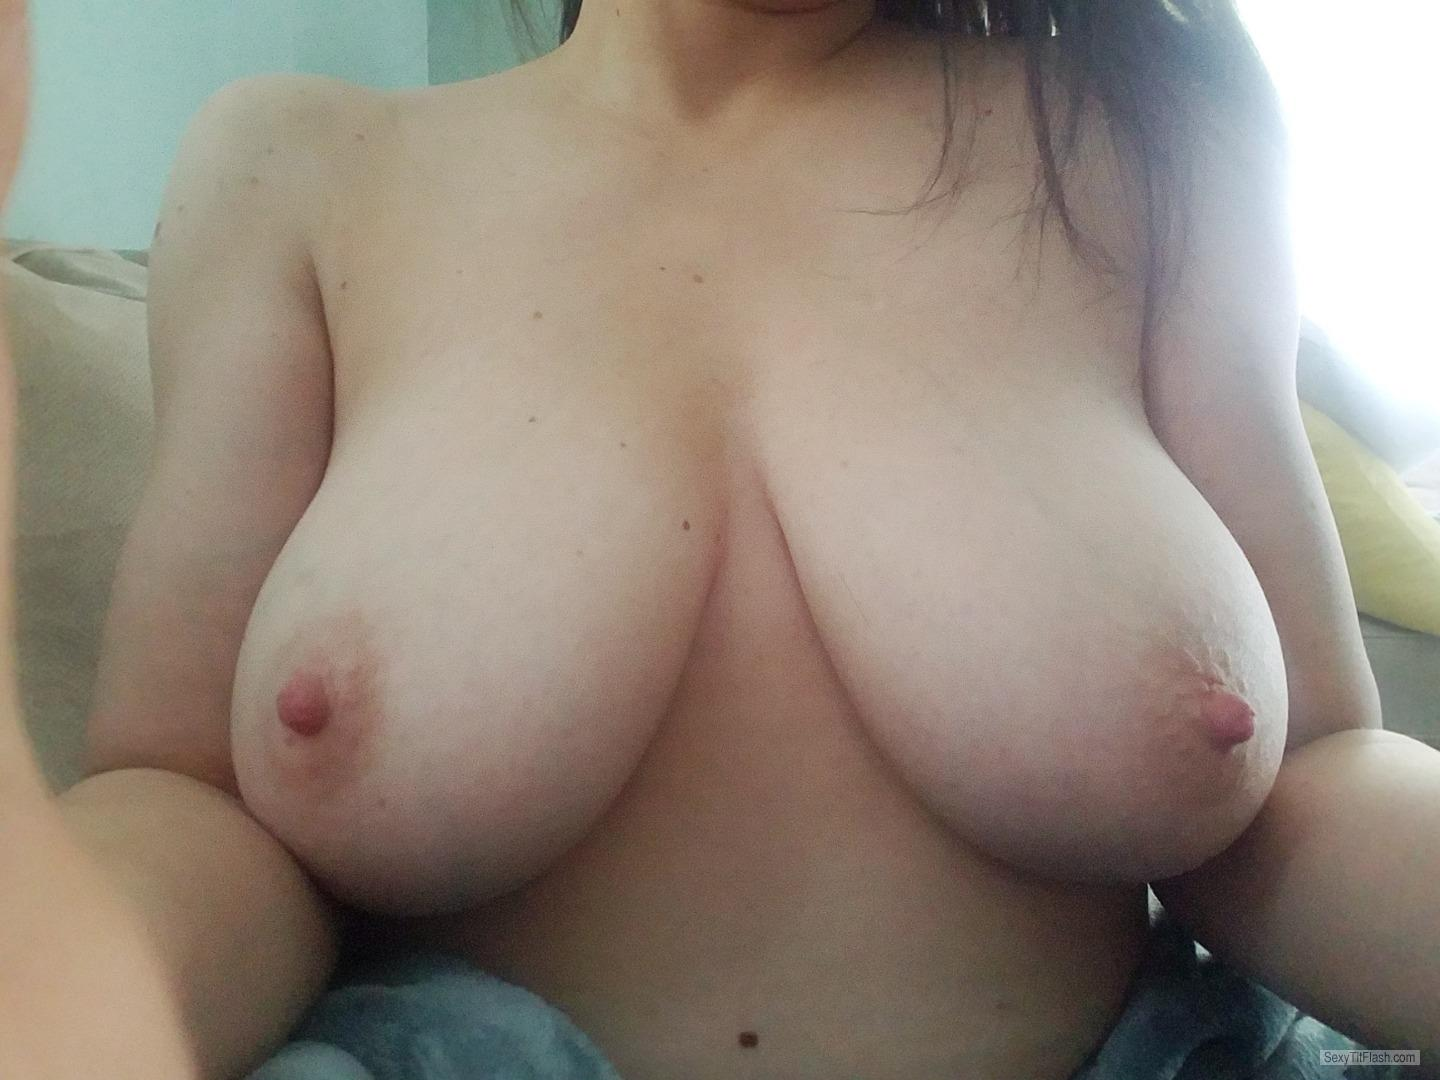 Tit Flash: My Very Big Tits (Selfie) - SMiowa2019 from United States